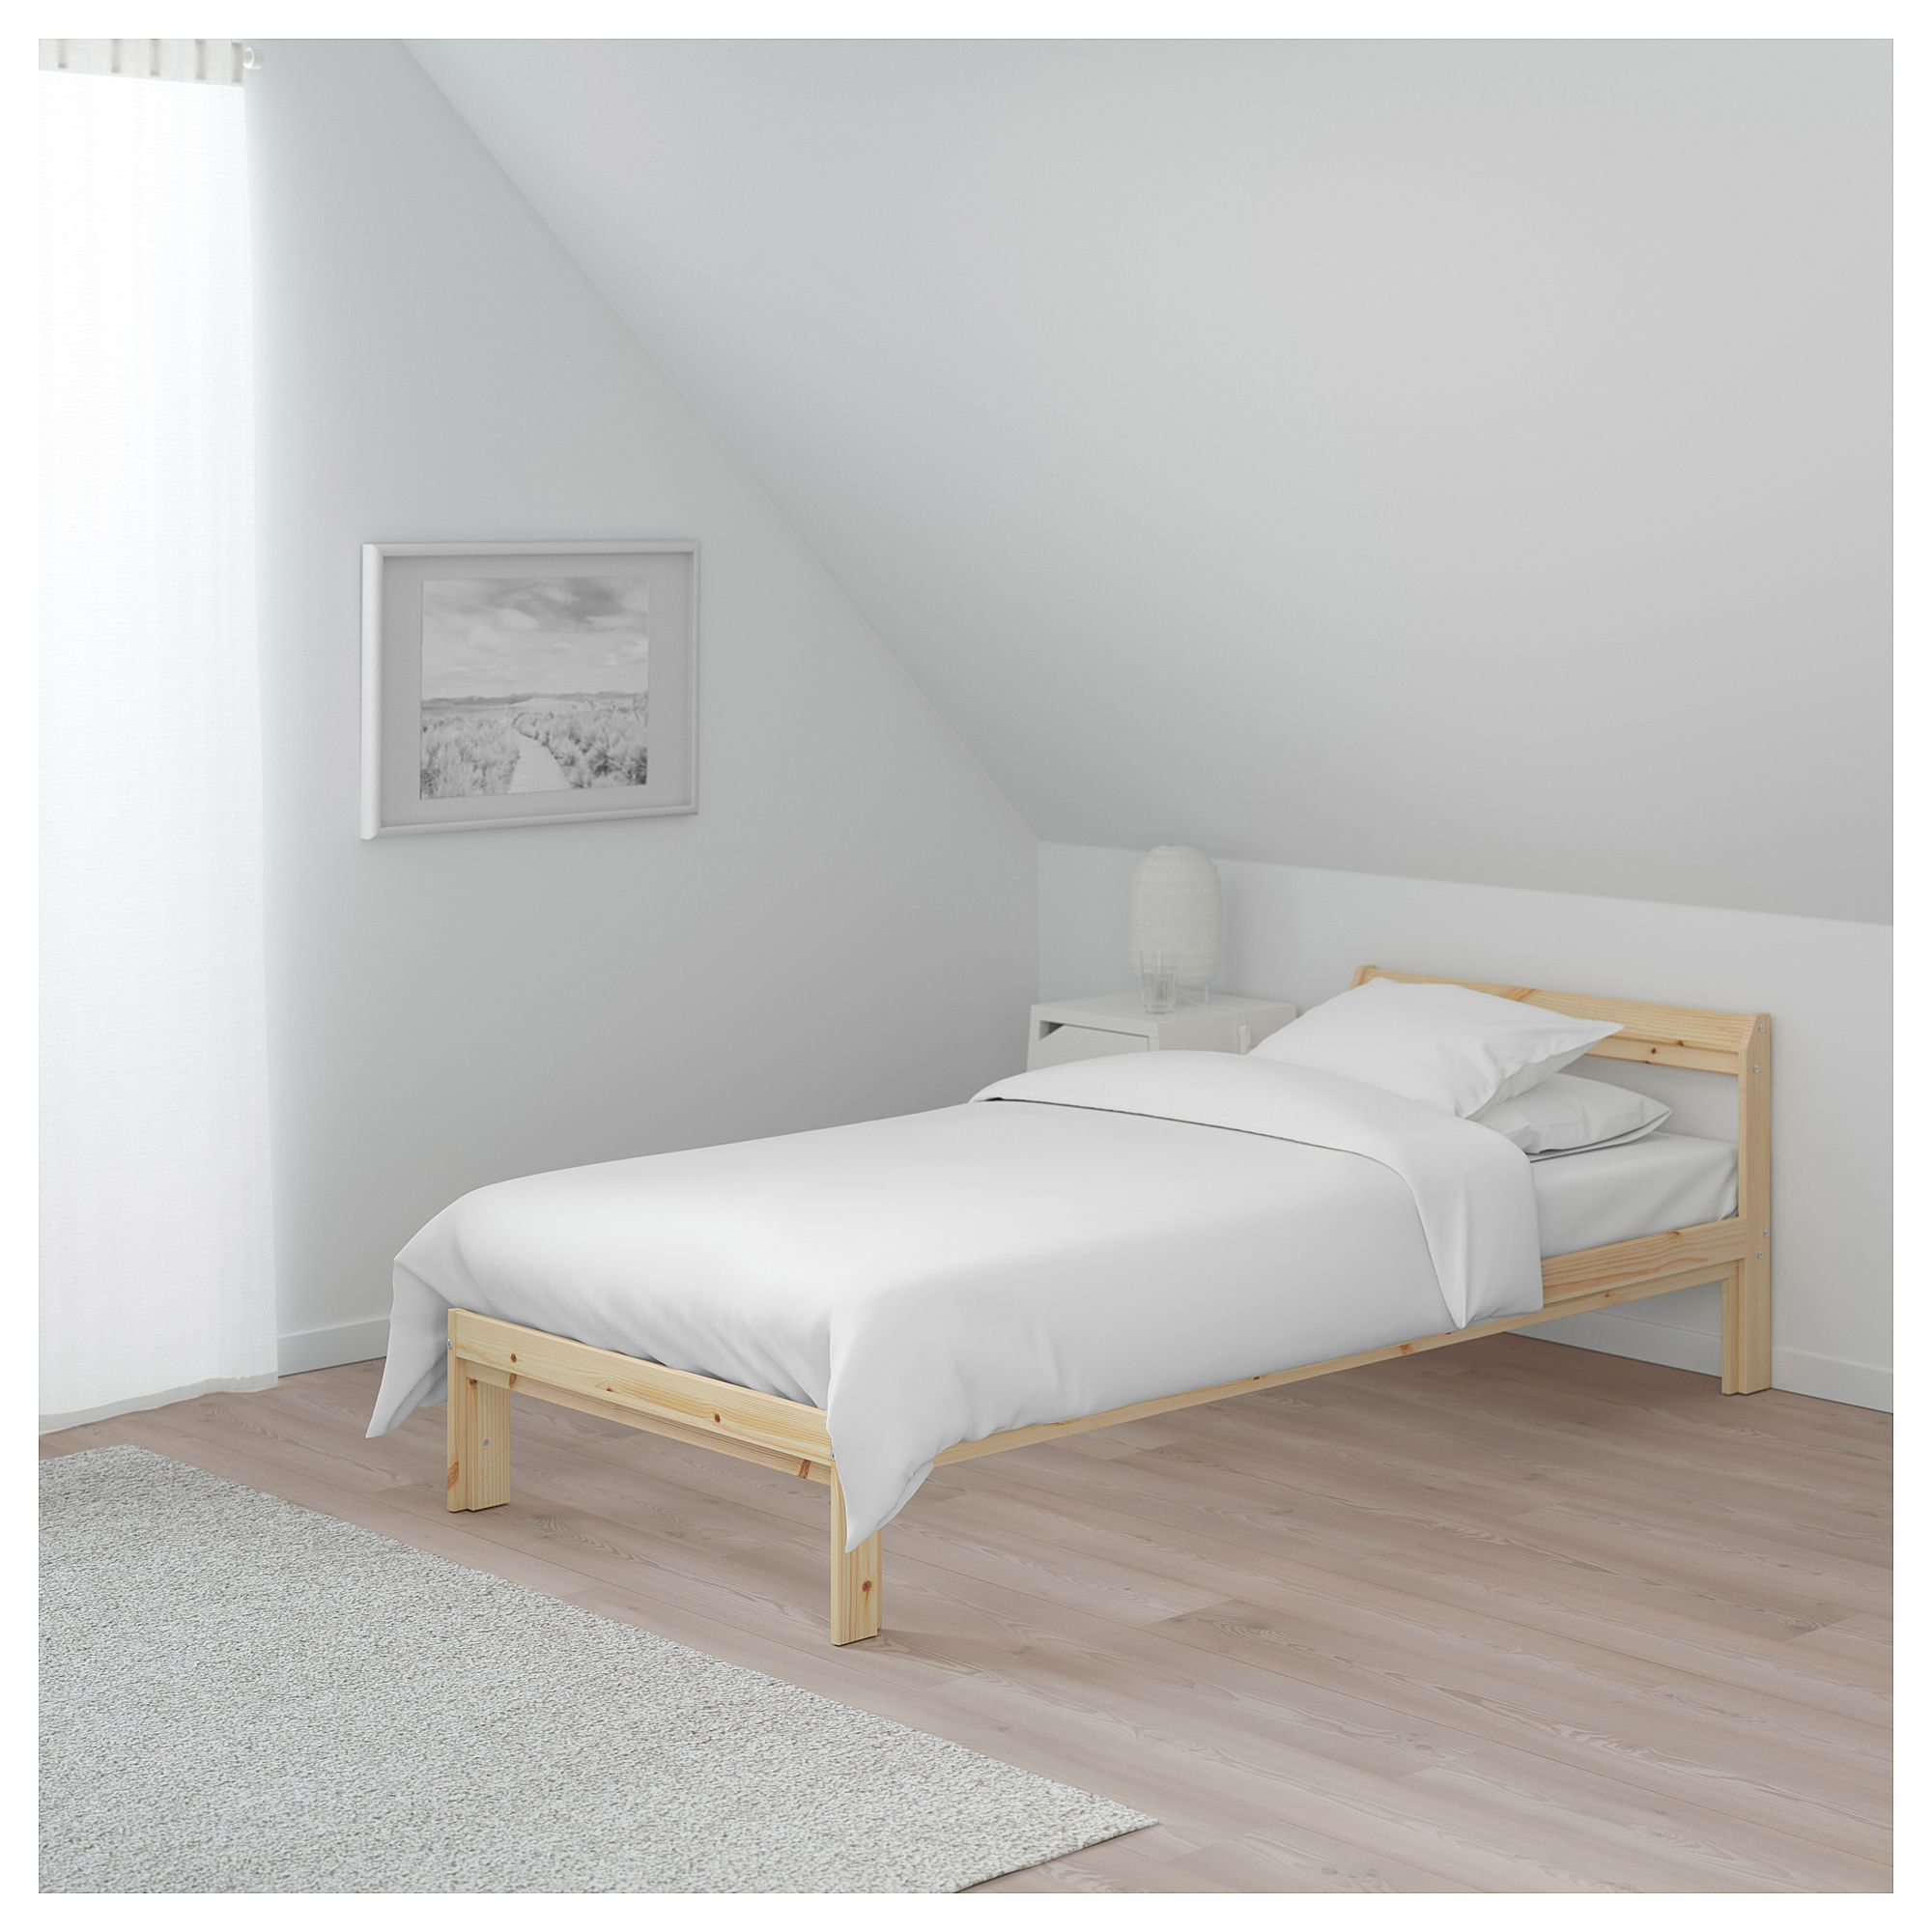 Neiden Bed Frame Pine Birch Luroy Shop Here Ikea Single Bed Frame Bed Frame Pine Bed Frame